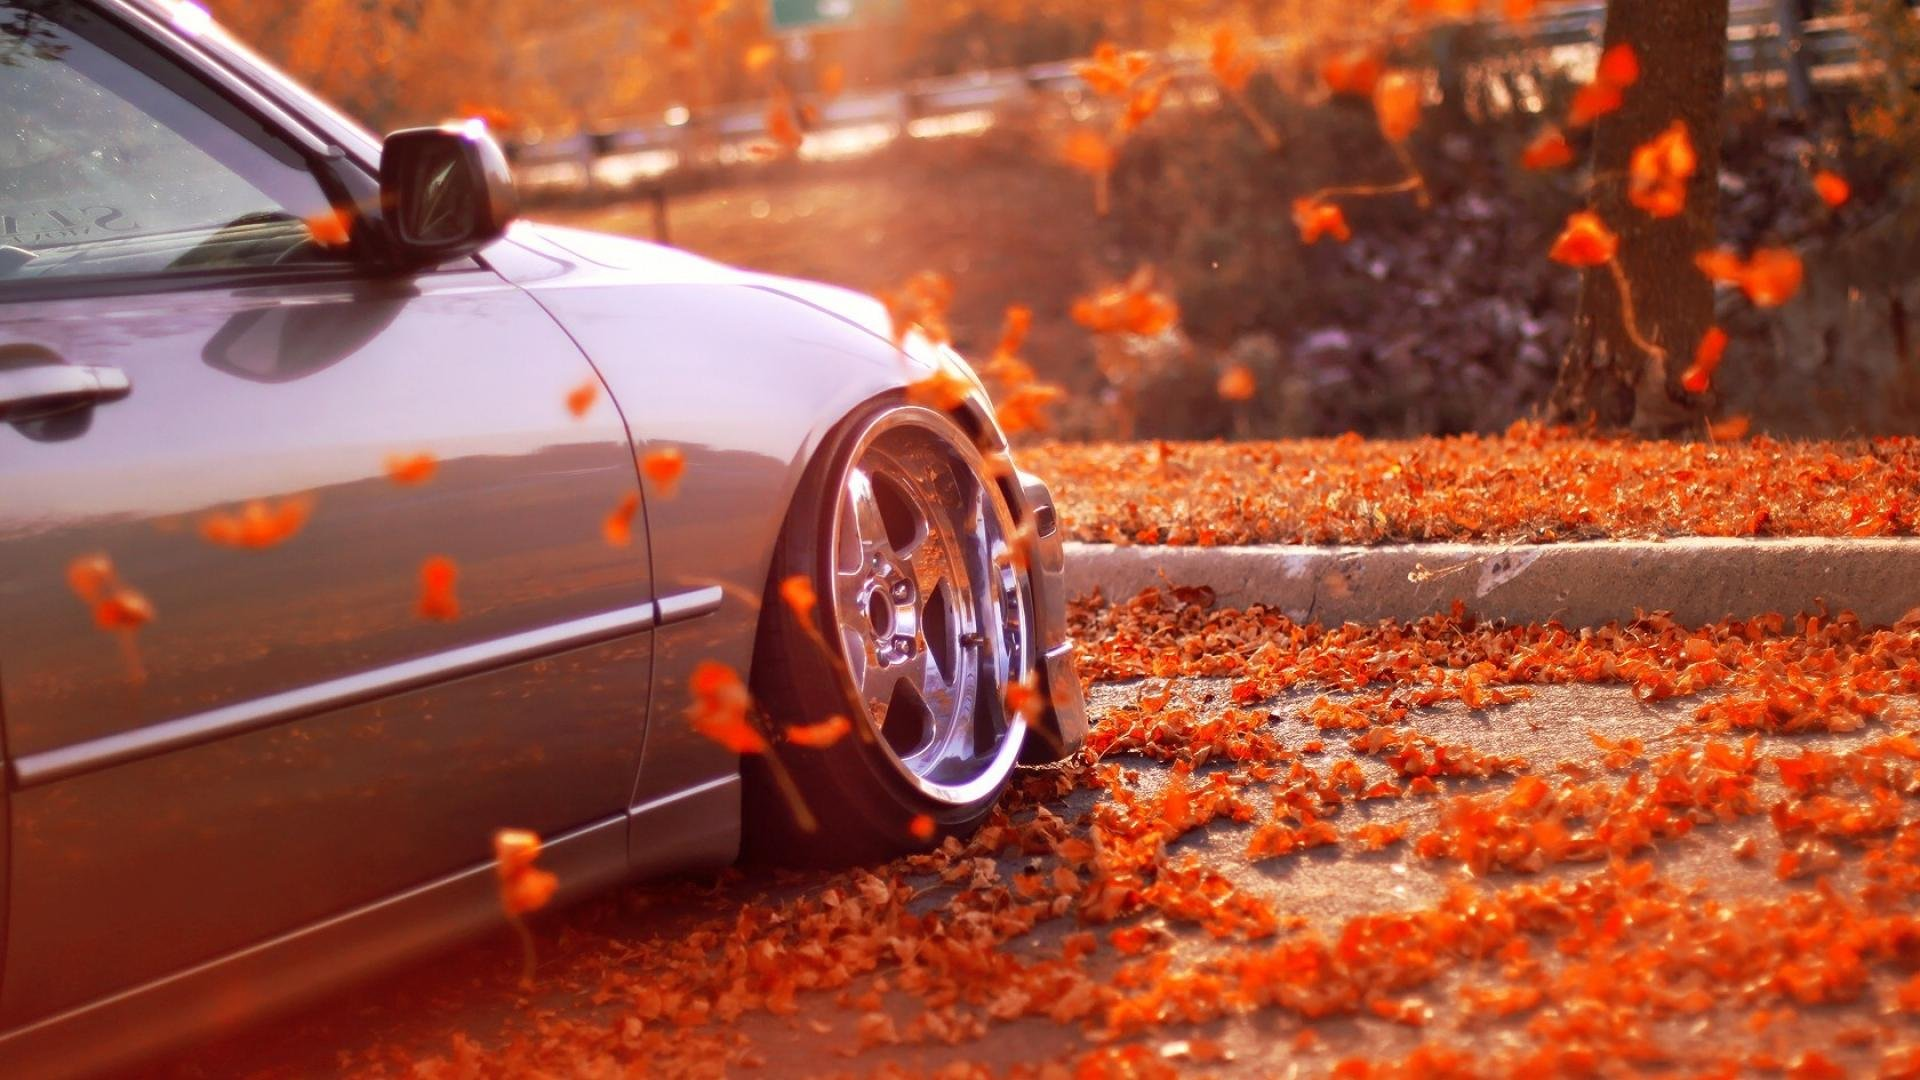 Fall Colors Wallpaper 1920x1080 Autumn Fall Landscape Nature Tree Forest Leaf Leaves Car